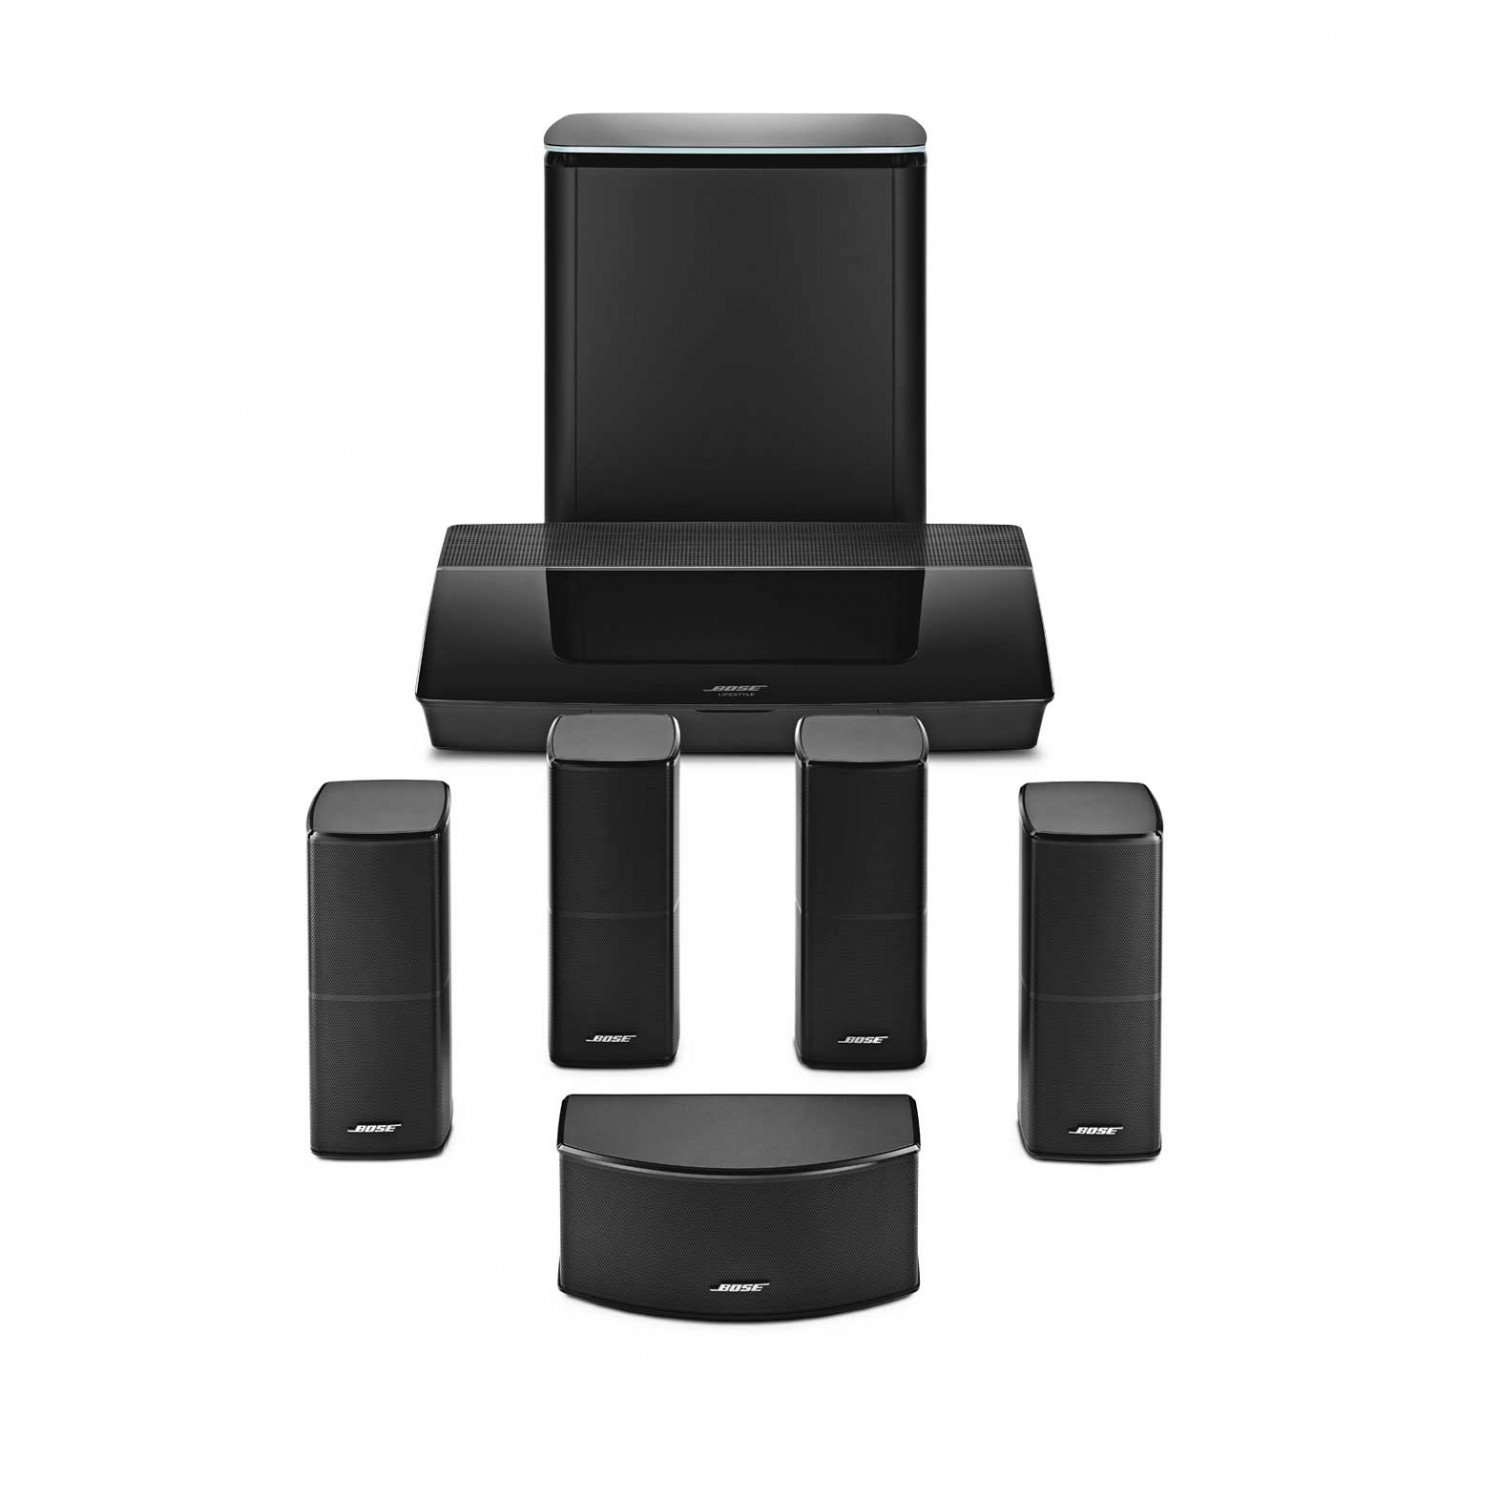 bose lifestyle 600 home cinema system. Black Bedroom Furniture Sets. Home Design Ideas